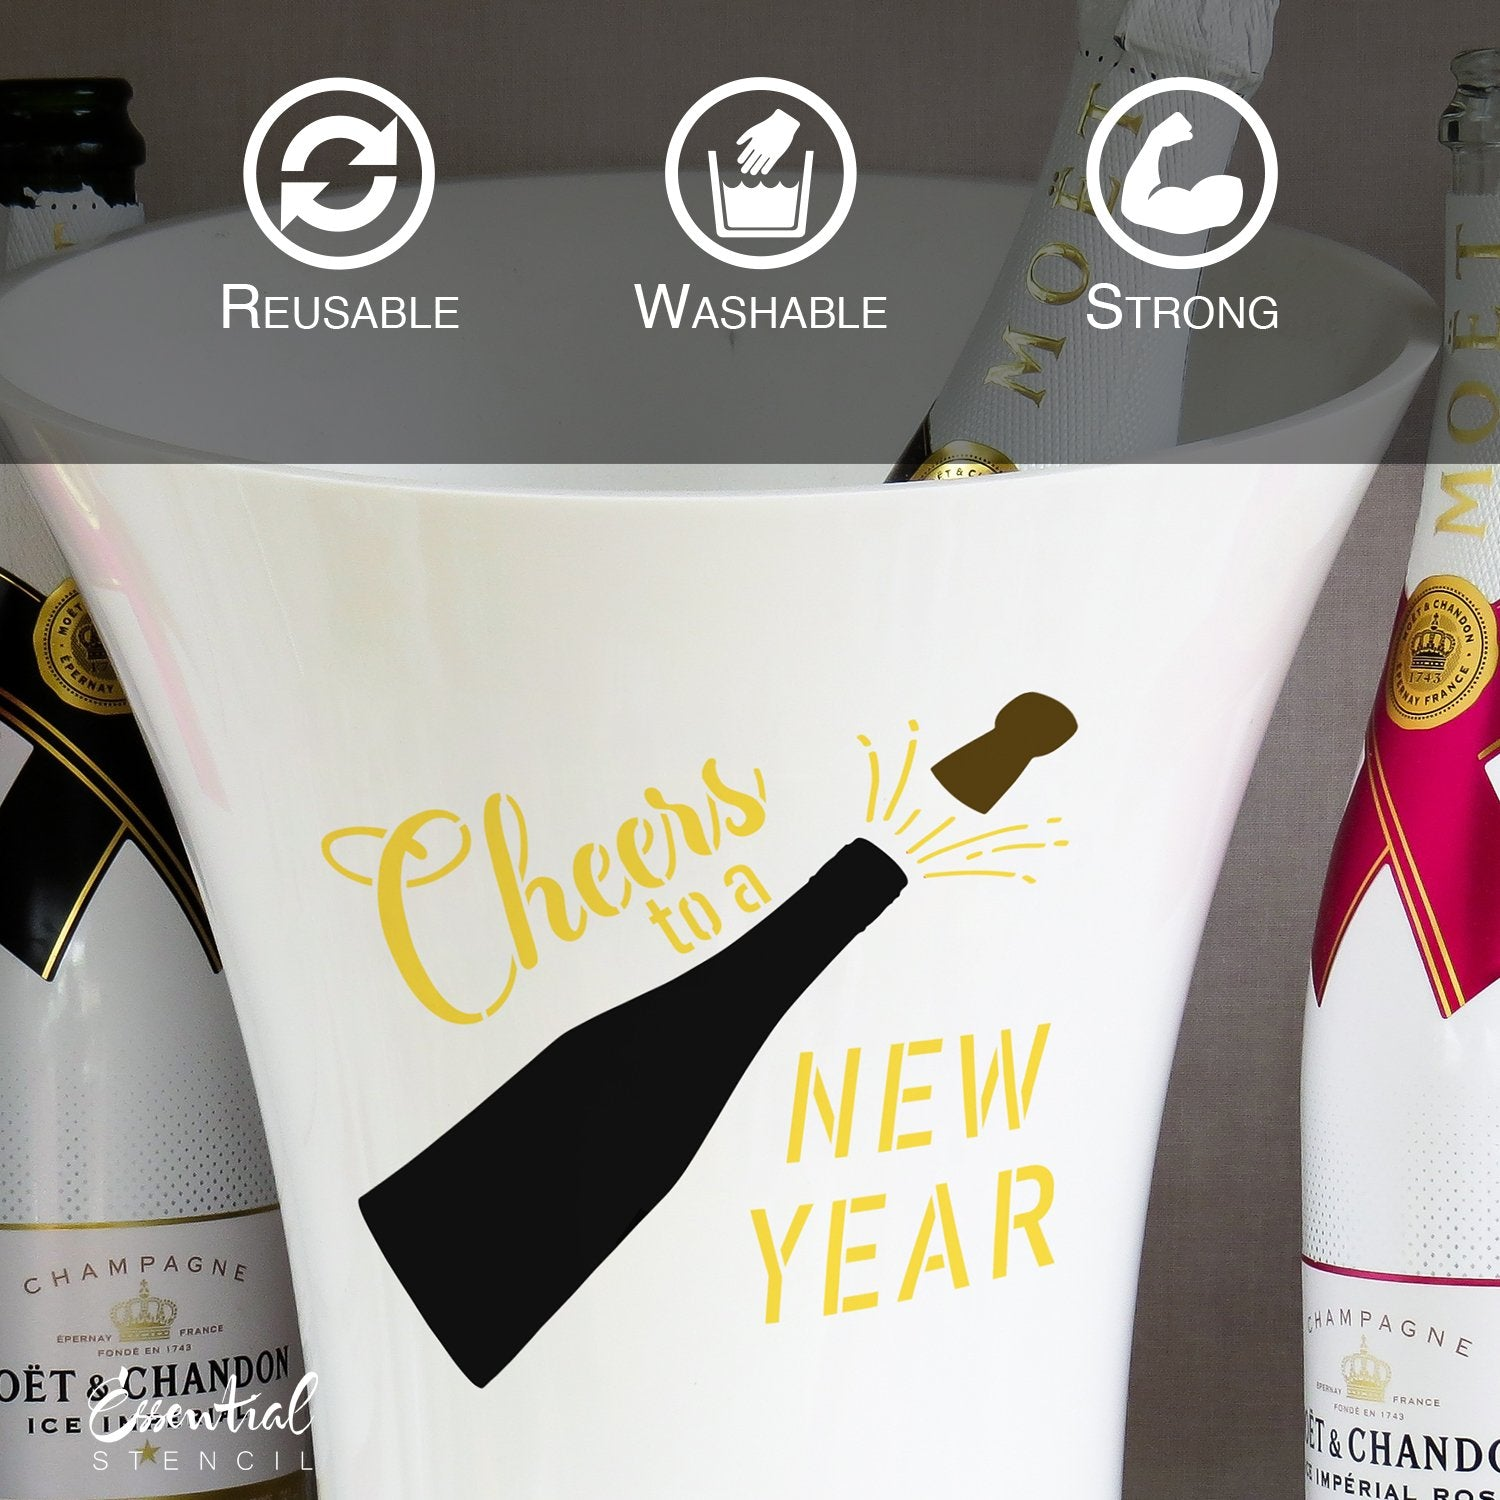 DIY reusable Happy New Year mini sign stencils, Cheers to a new year stencil, fireworks stencil, bottle popping New Year stencil, New Year DIY crafts